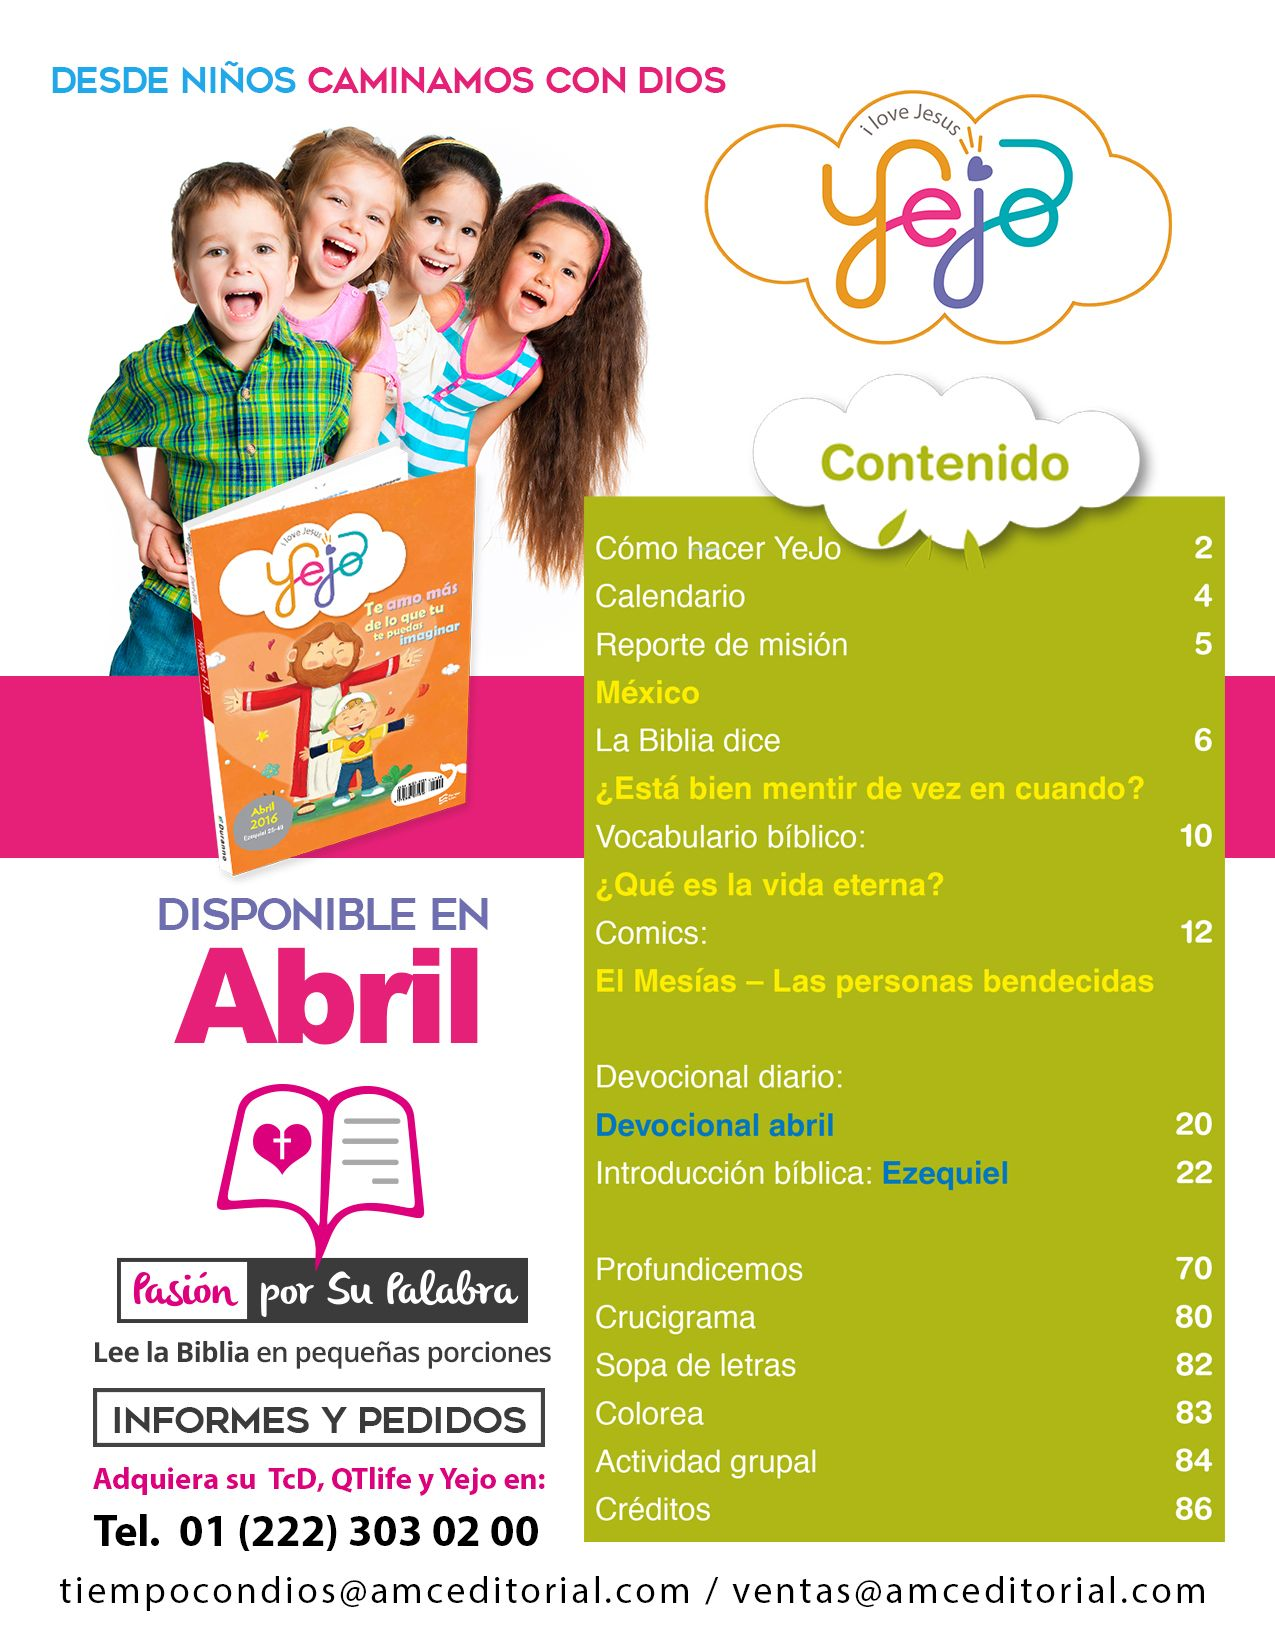 informes: 01(222) 3030200  http://www.amceditorial.com/contact.html